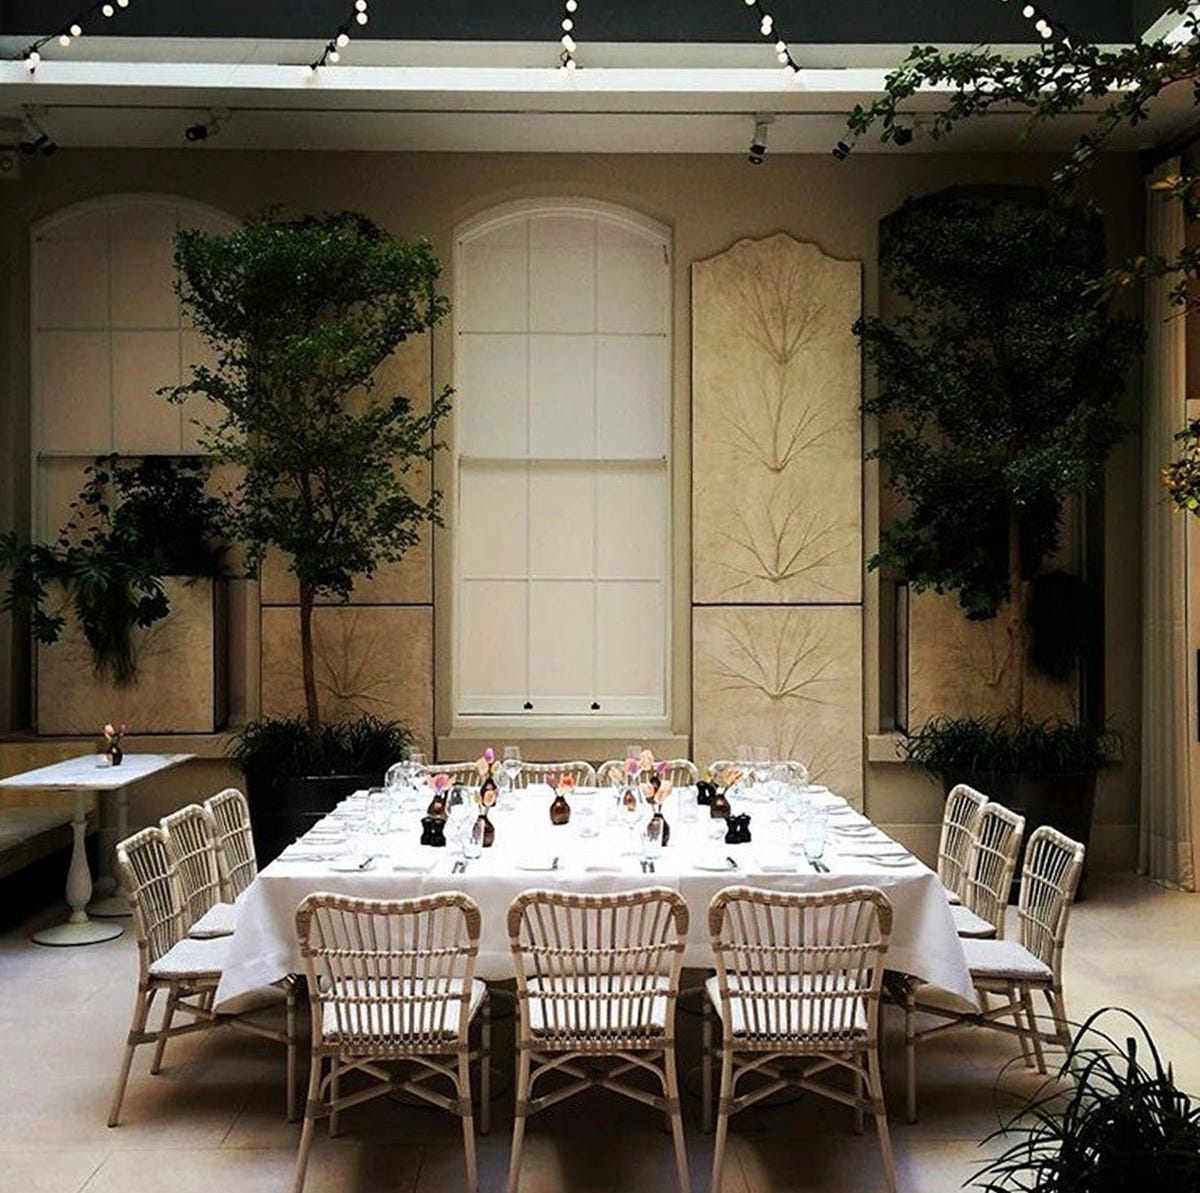 Private Dining Rooms in London. Most Beautiful Dining Room Pictures. Home Design Ideas